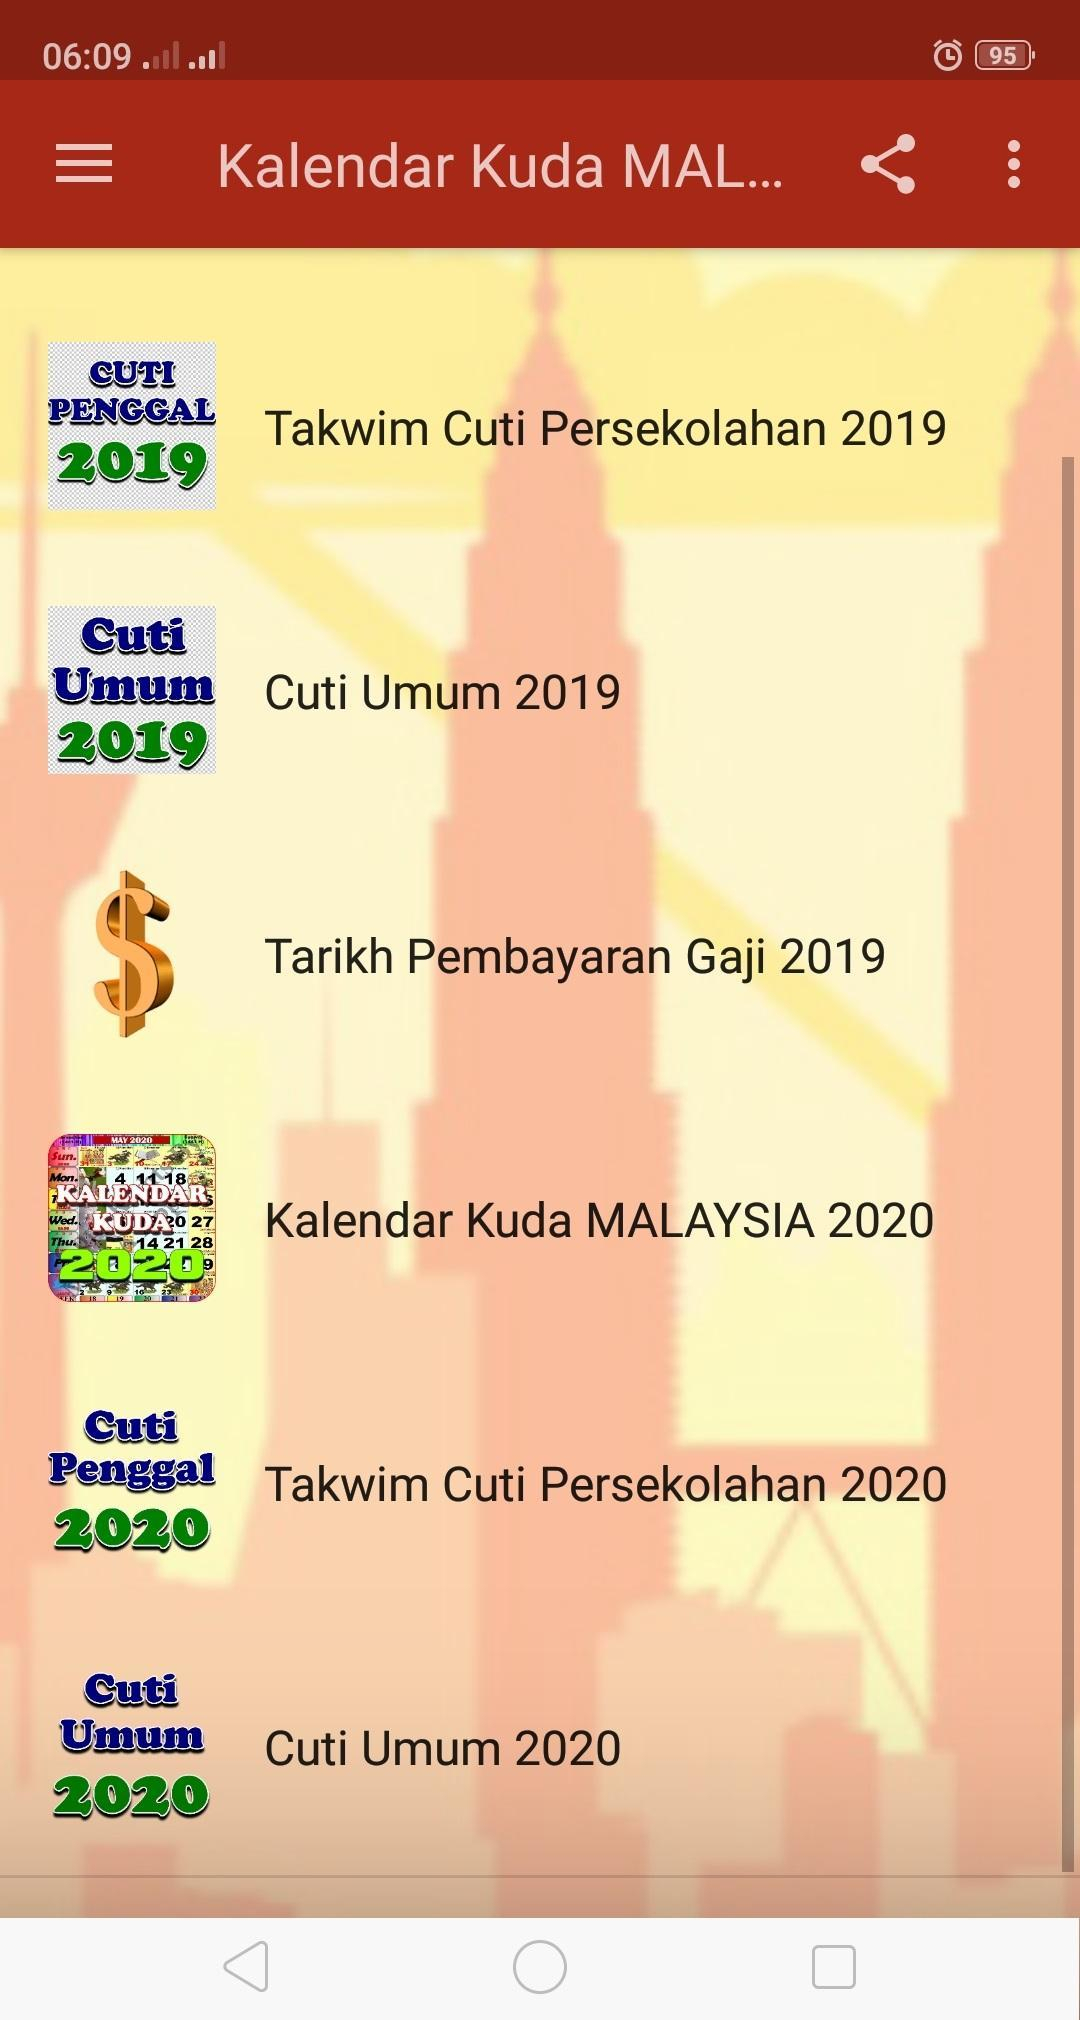 Kalendar Kuda Malaysia  2020 For Android  Apk Download within Calendar Kuda January 2020